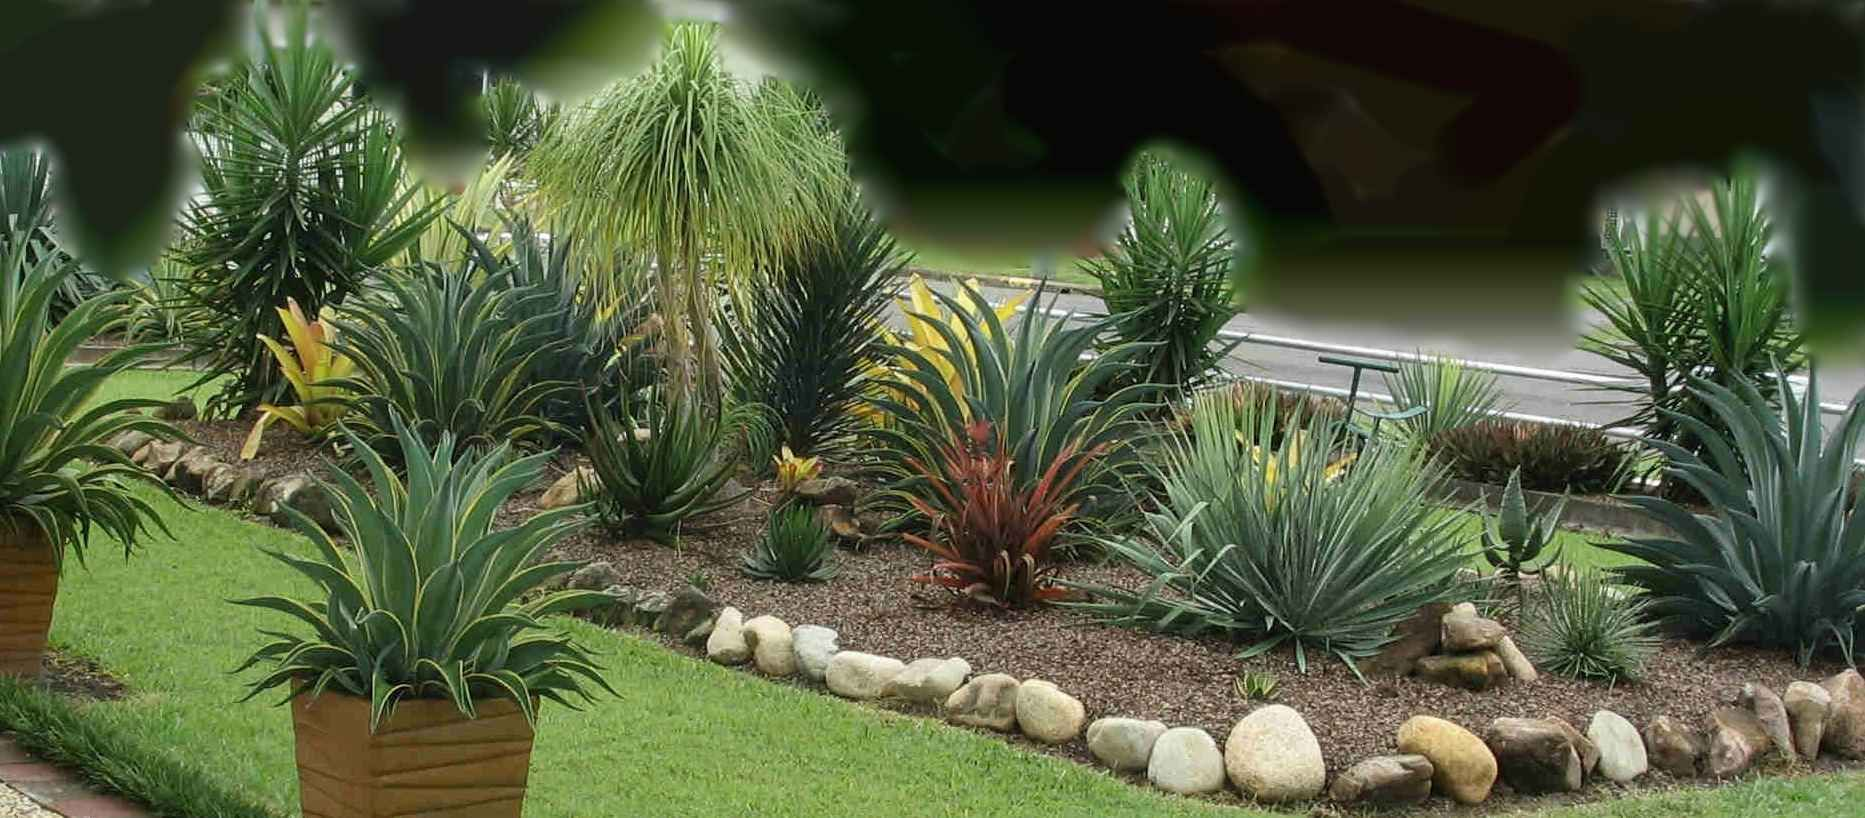 Yucca agave plants landscaping garden design ideas for Garden design plants